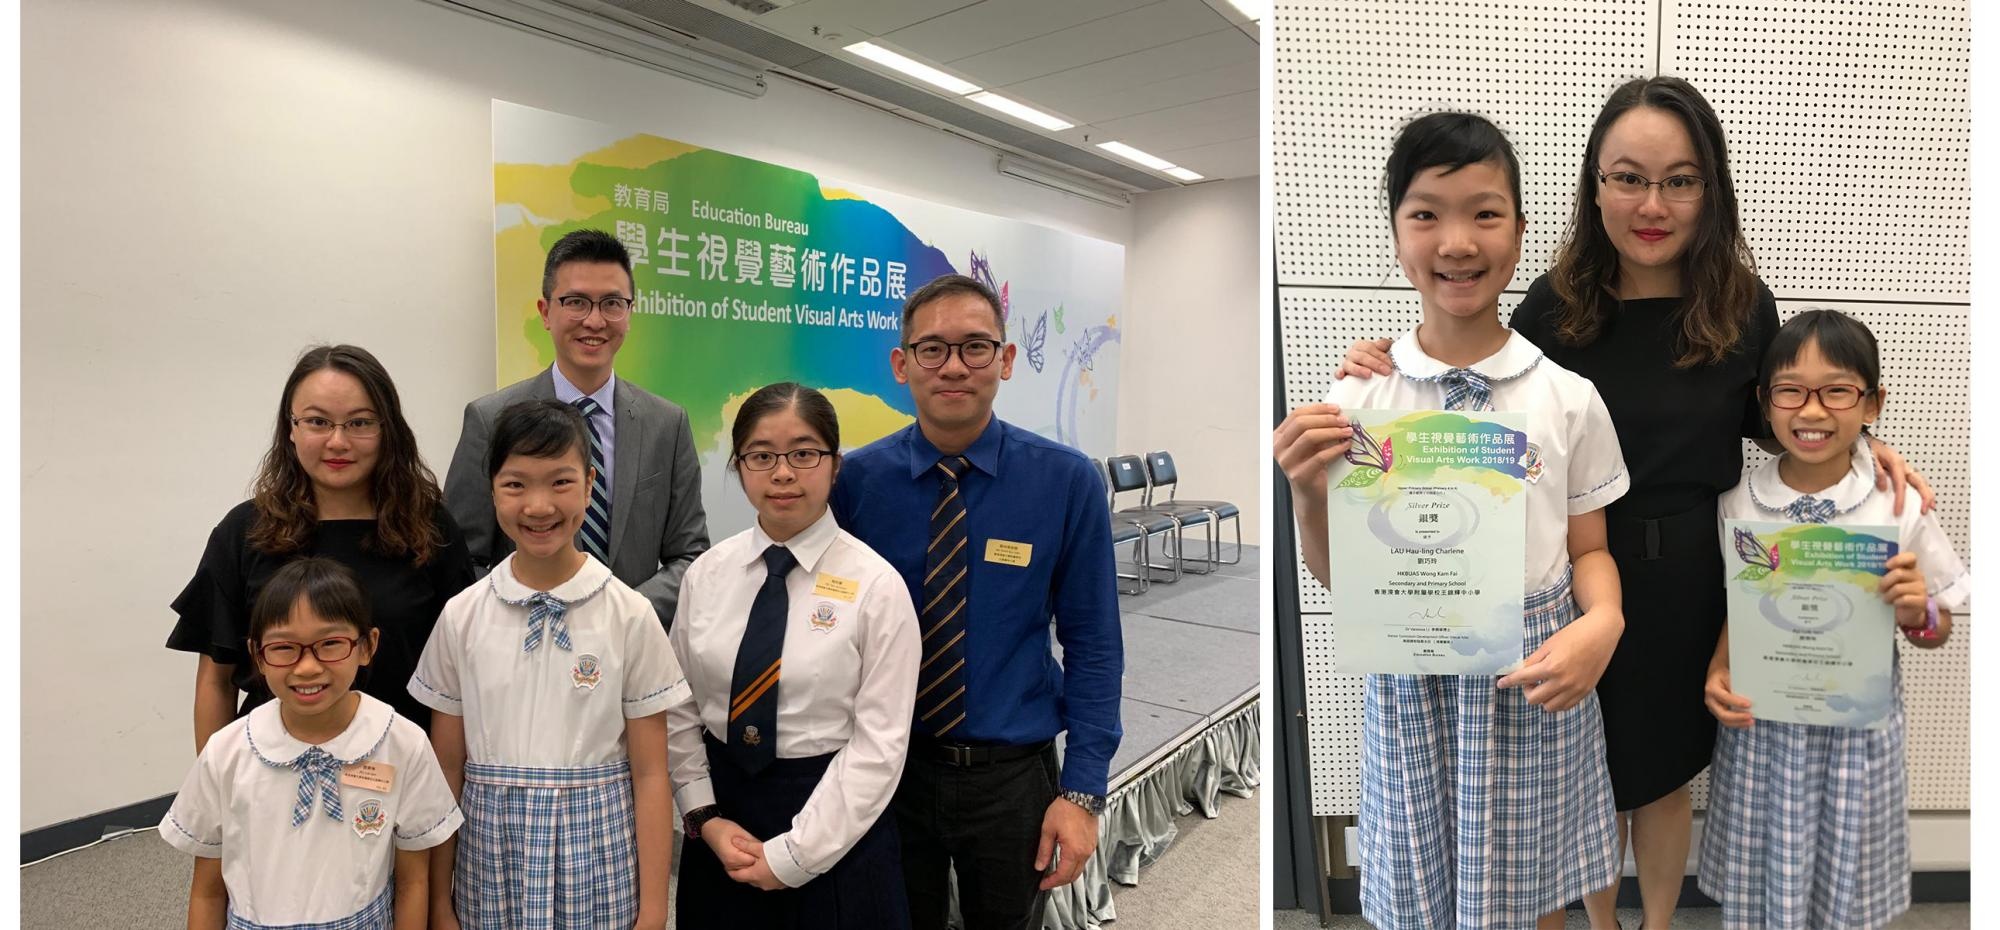 Students were awarded Silver Prize and their works were exhibited at the Exhibition of Student Visual Arts Work by the Education Bureau